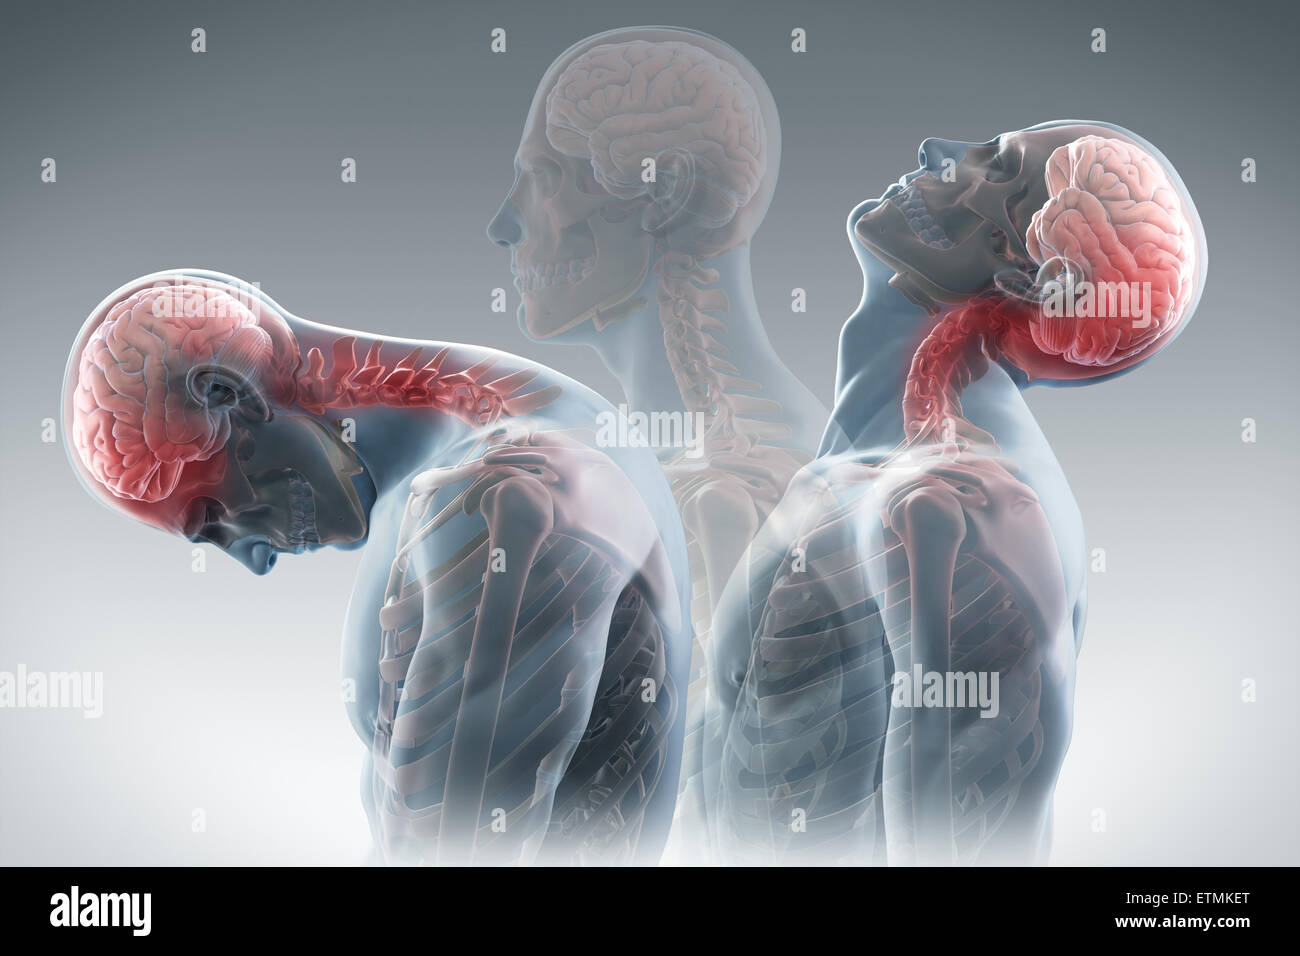 Conceptual illustration showing the stages of motion that cause whiplash: retraction, extension and rebound. - Stock Image